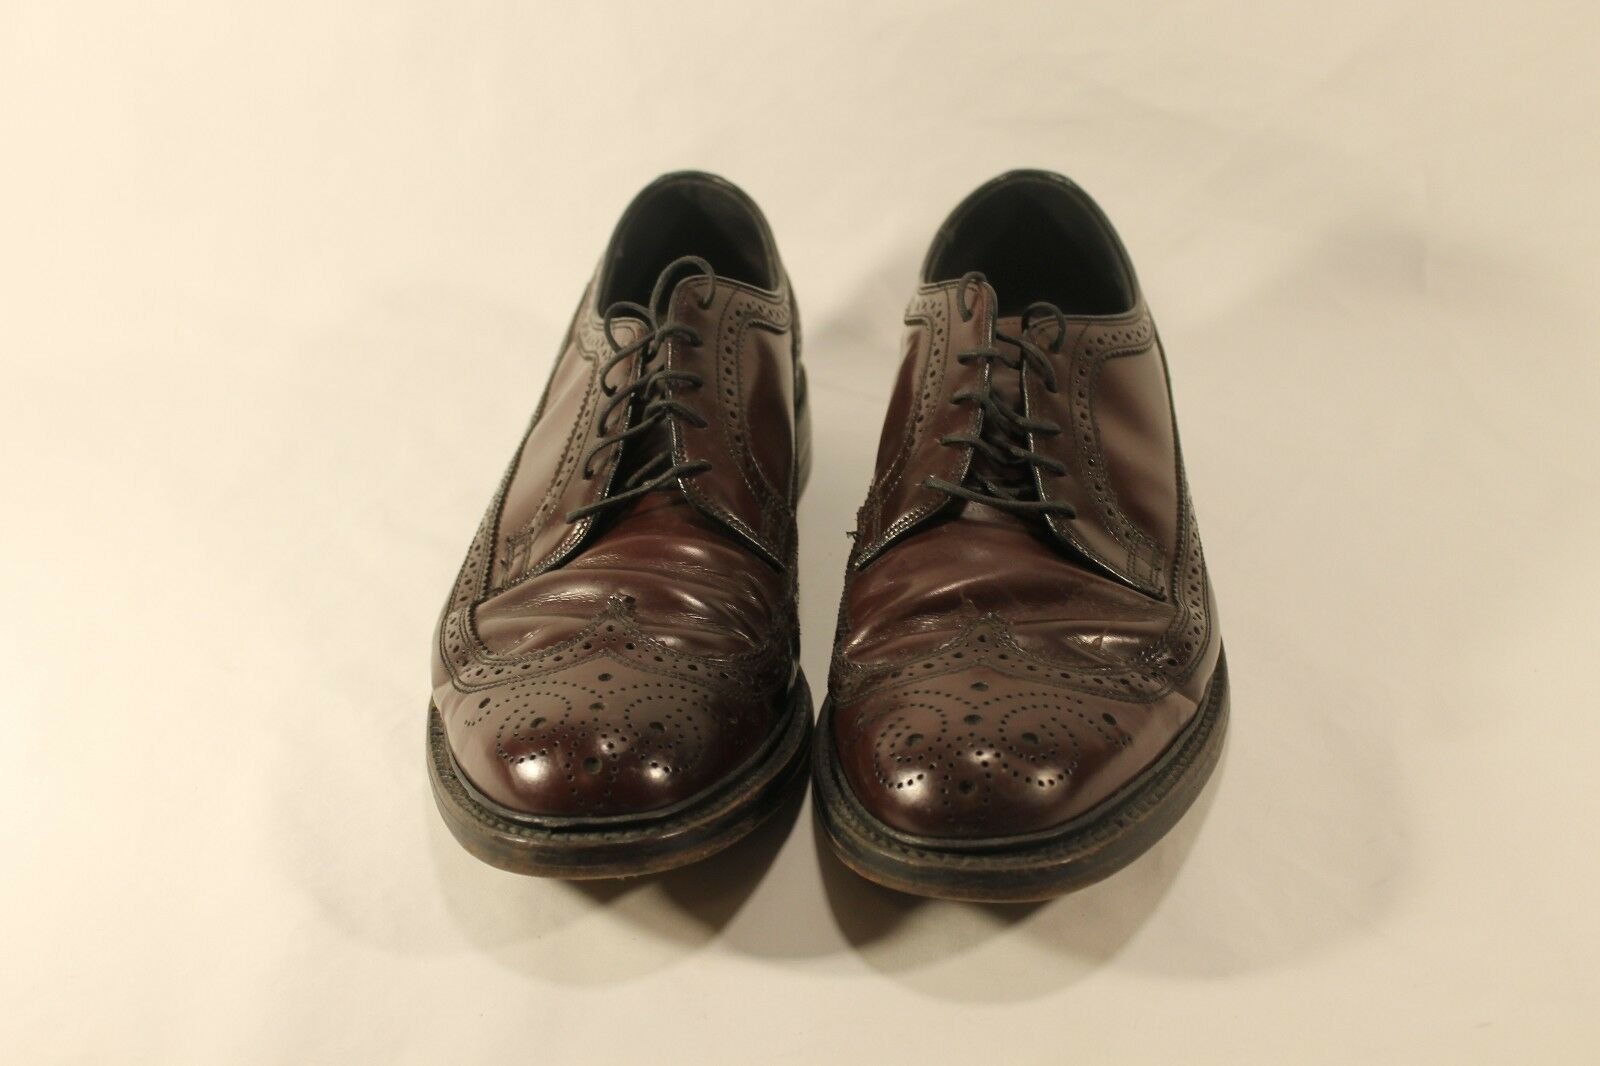 Uomo Walk Over Burgundy LongWing Wingtip Oxford Dress Brogue Shoes 10.5 C/A USA